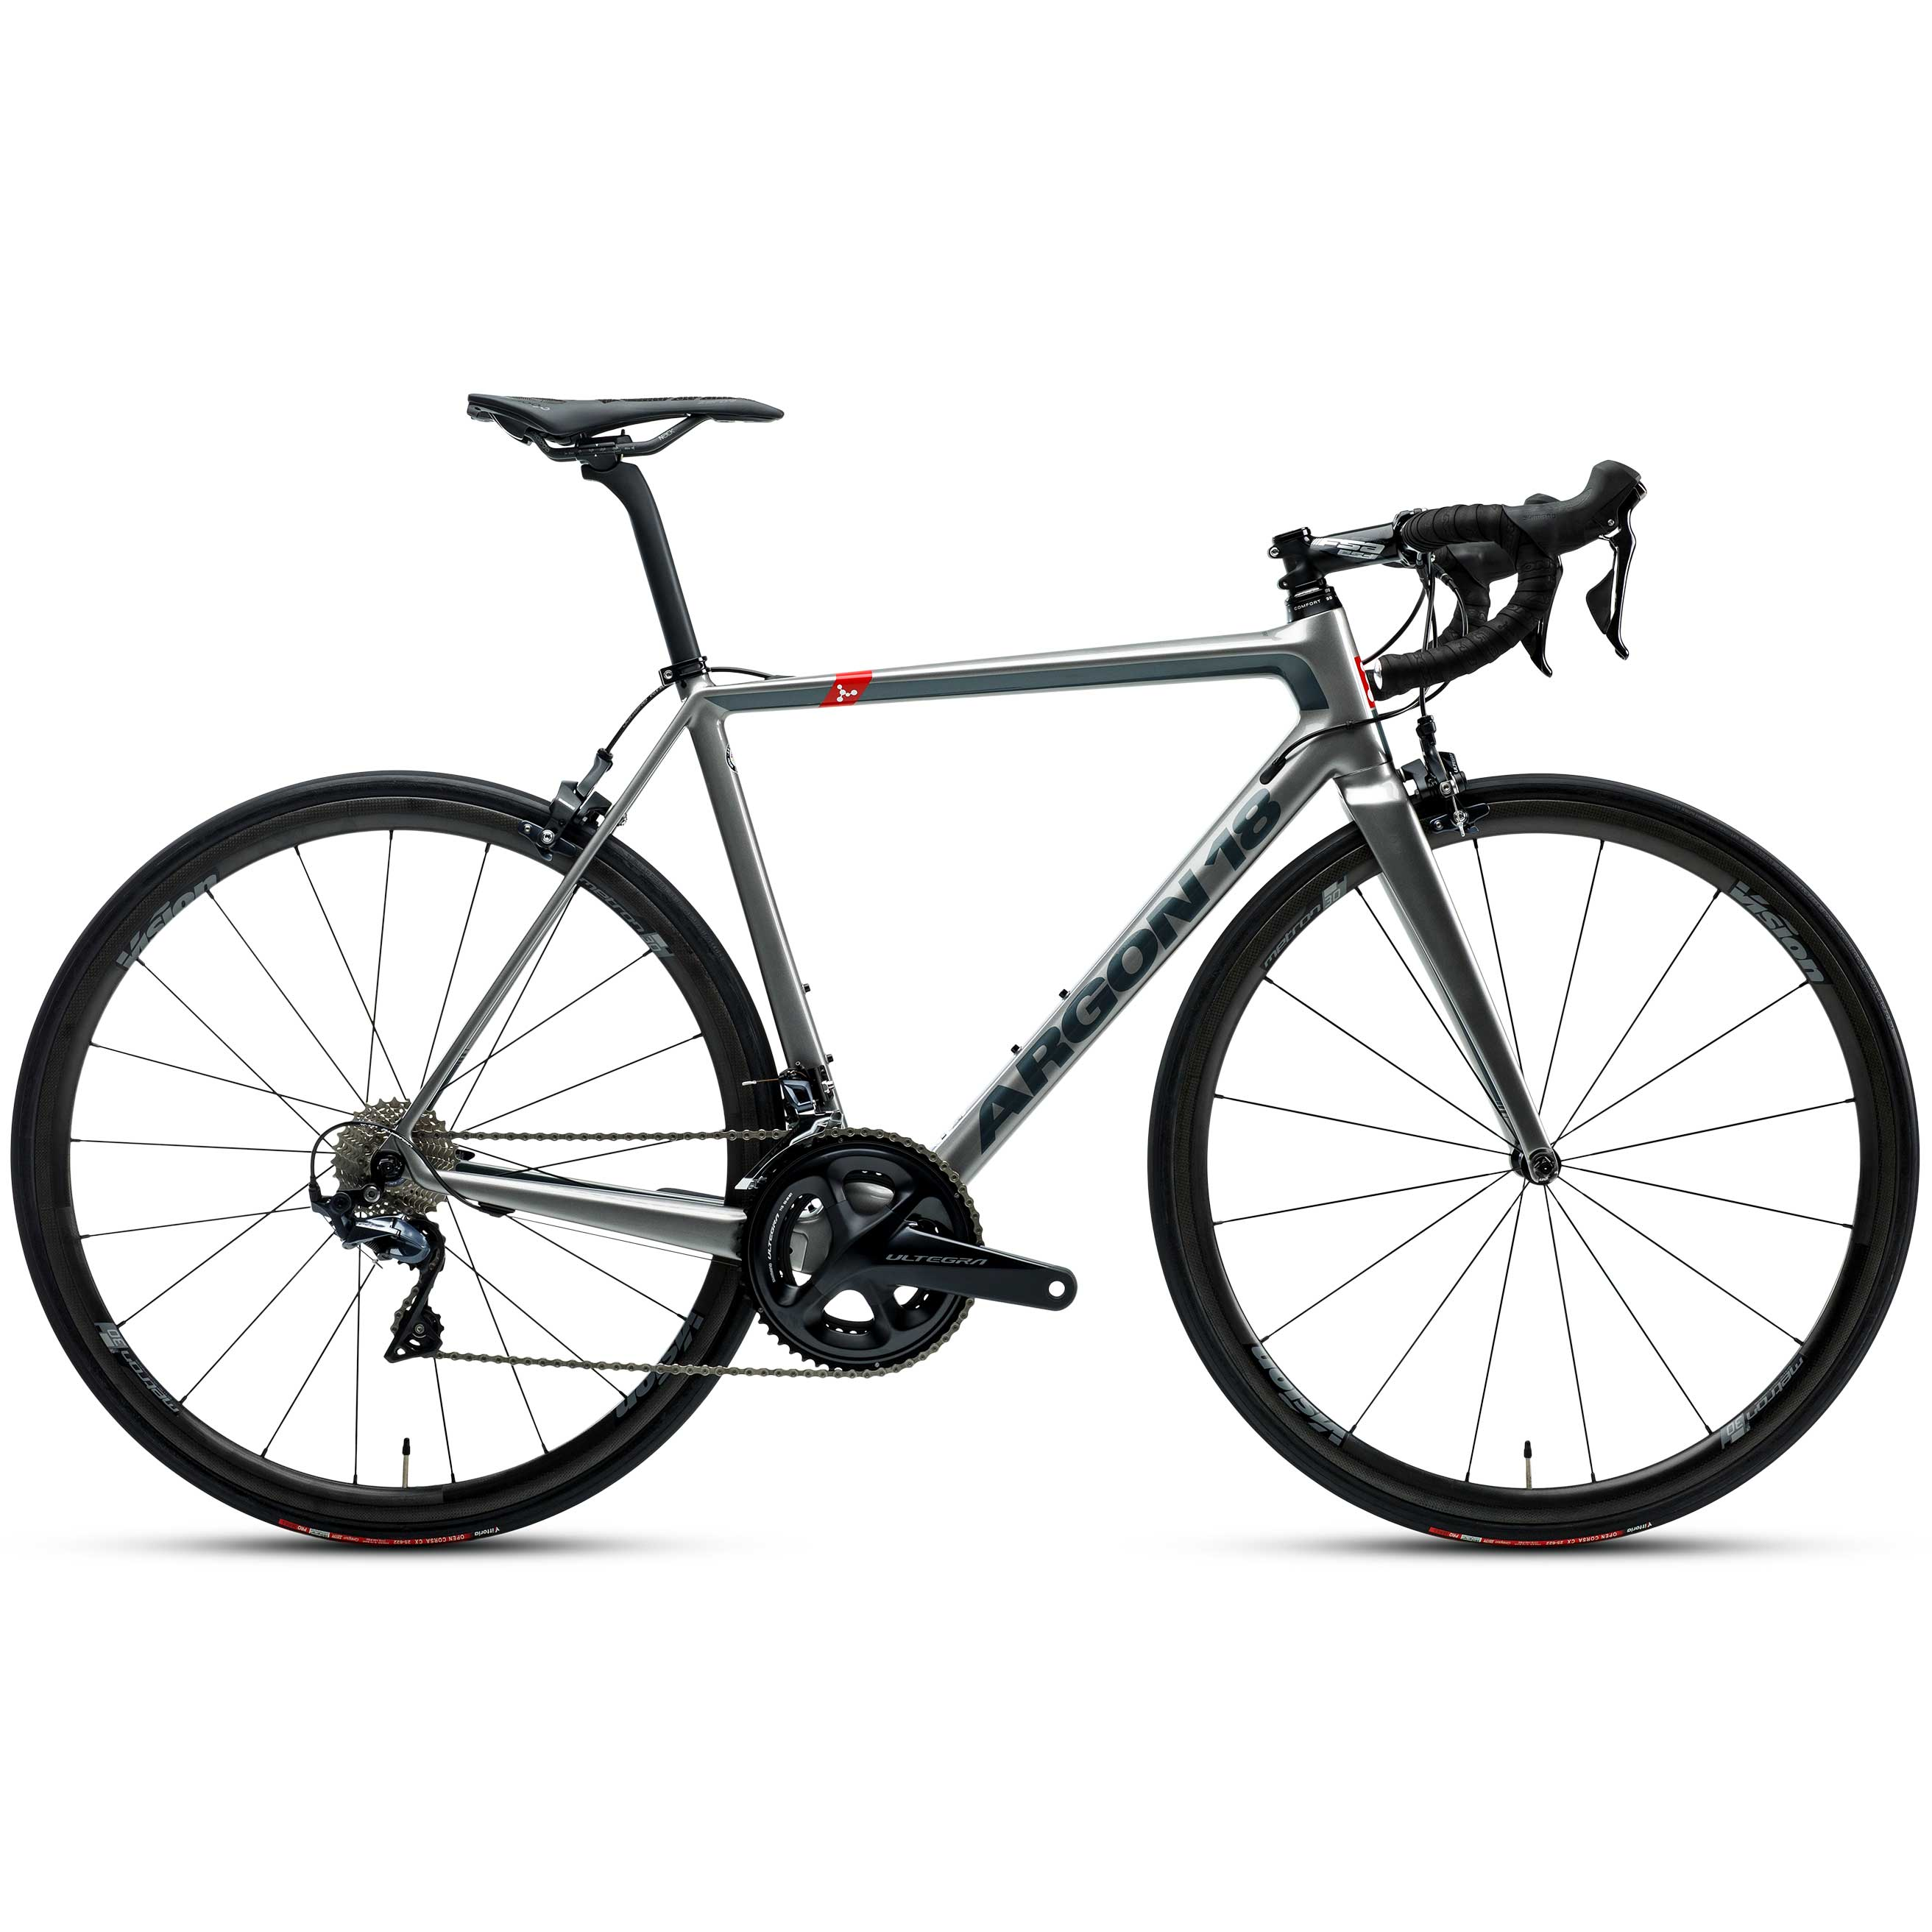 Argon 18 Gallium Ultegra Di2 Road Bike